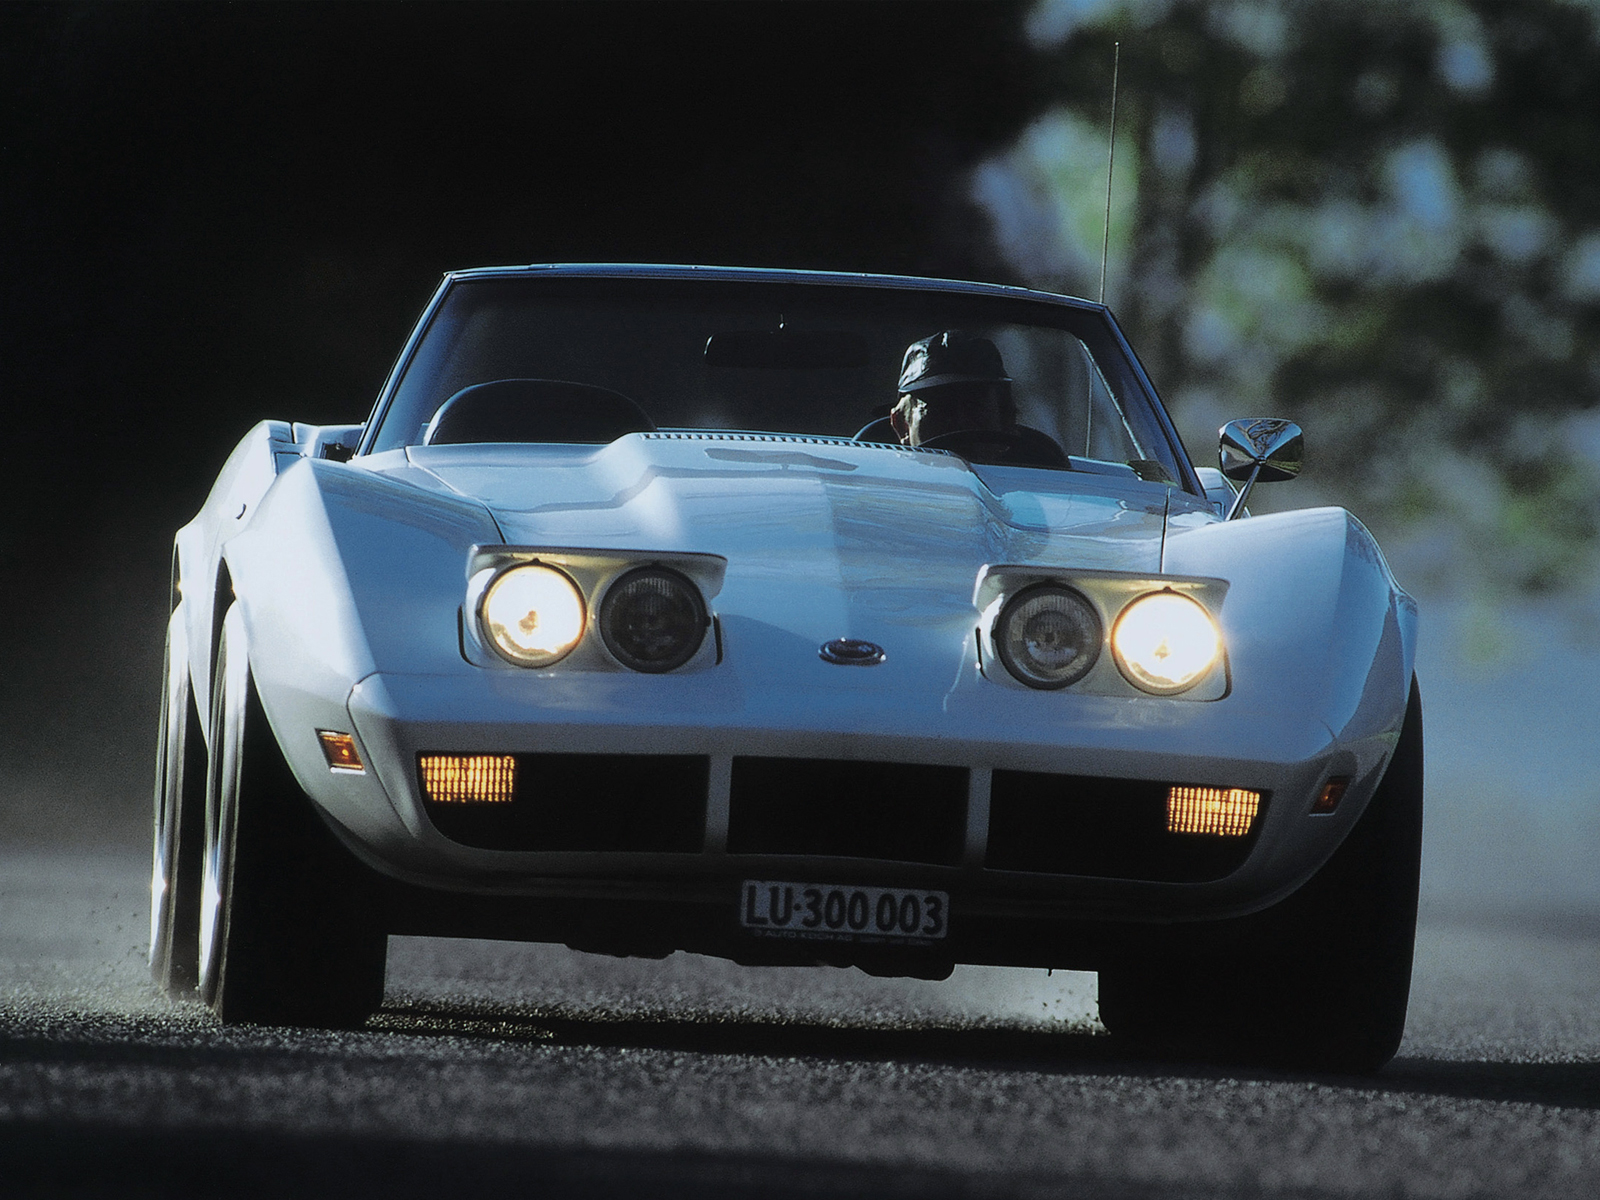 1973 Chevrolet Corvette Stingray Convertible C 3 Supercar